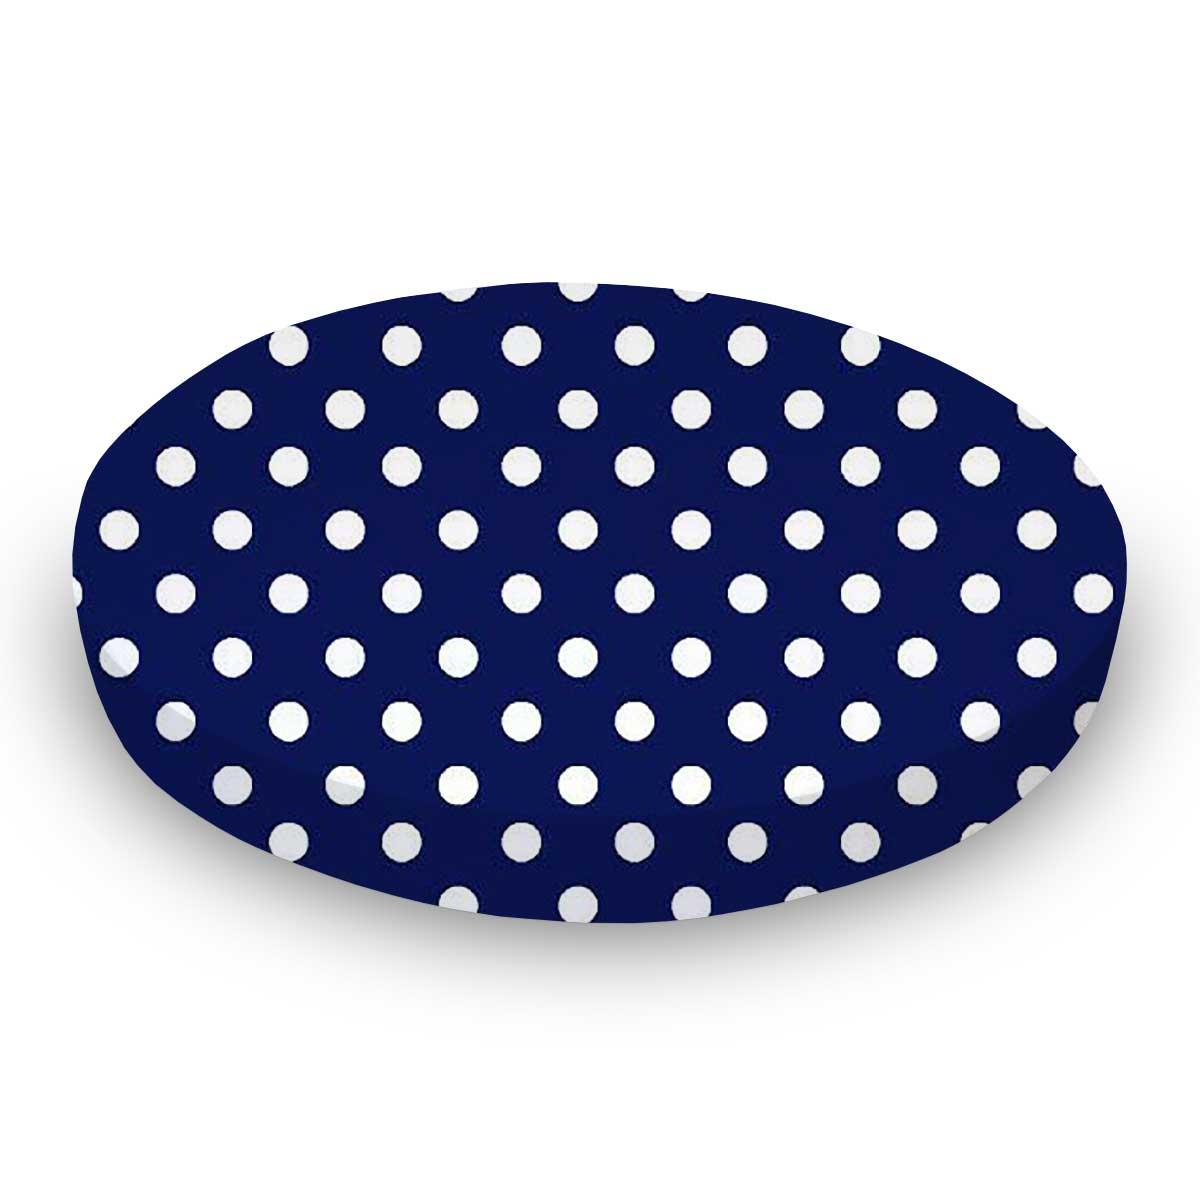 Primary Polka Dots Navy Woven